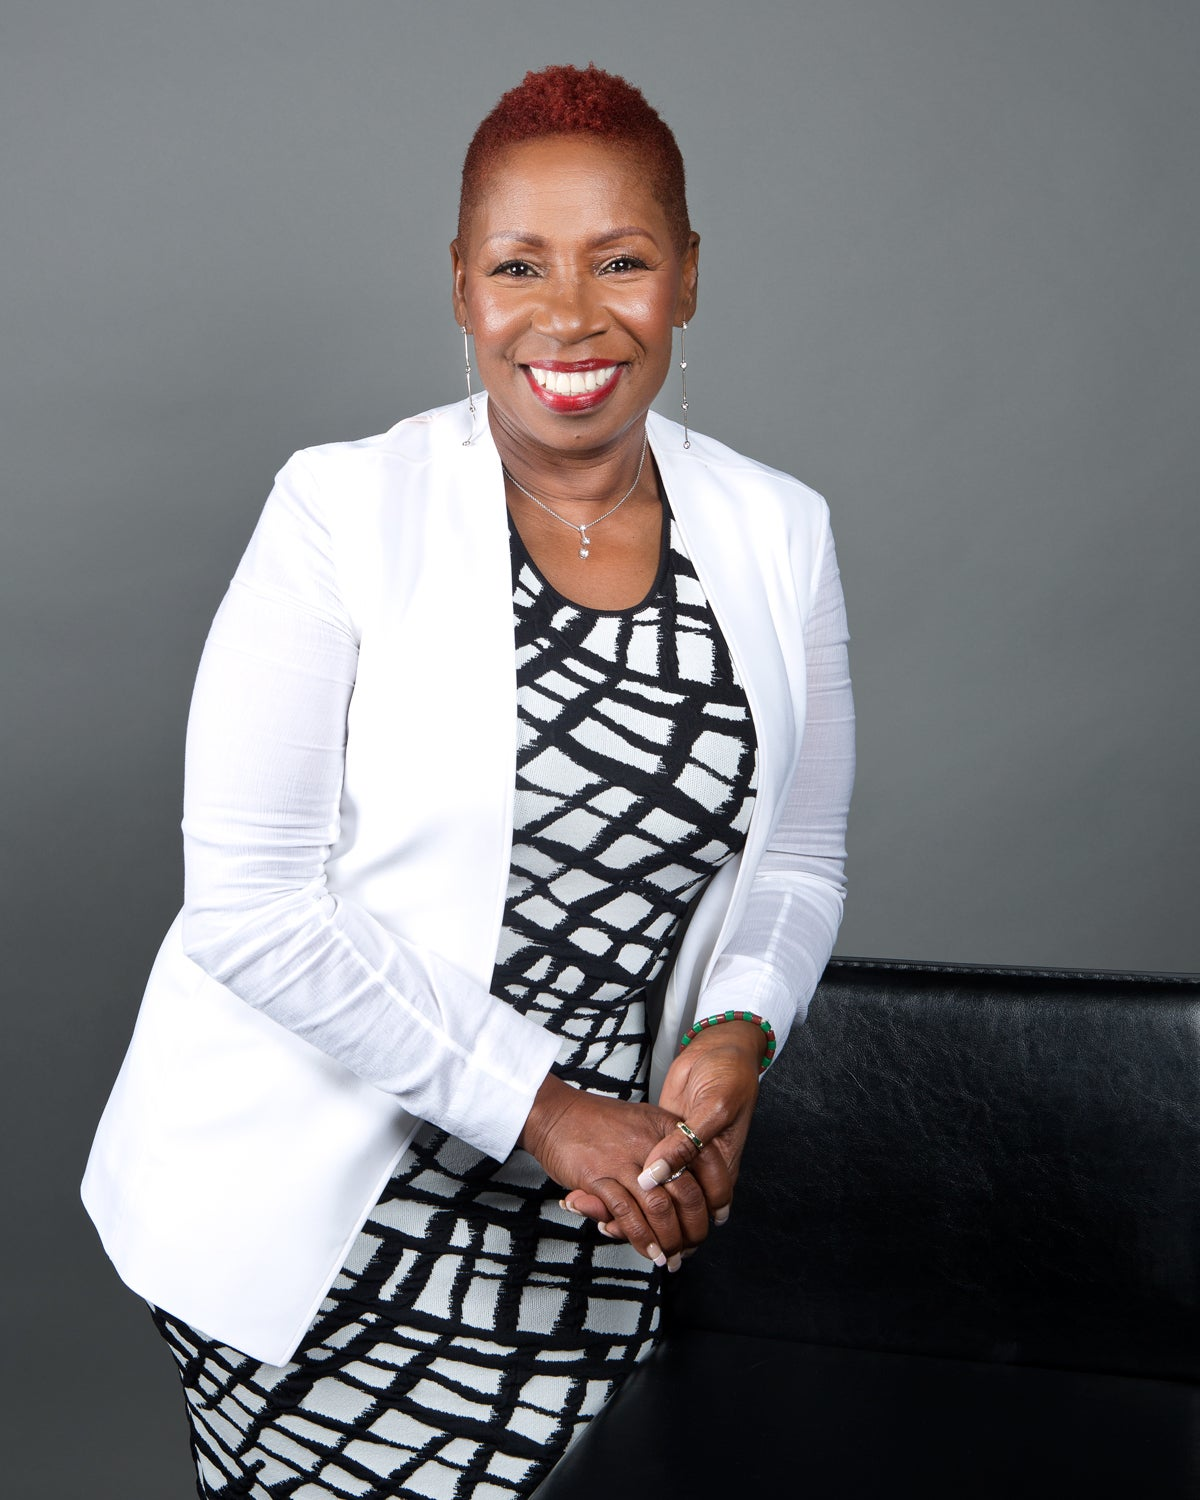 15 Iyanla Vanzant Quotes To Help Your Work Week Start On The Right